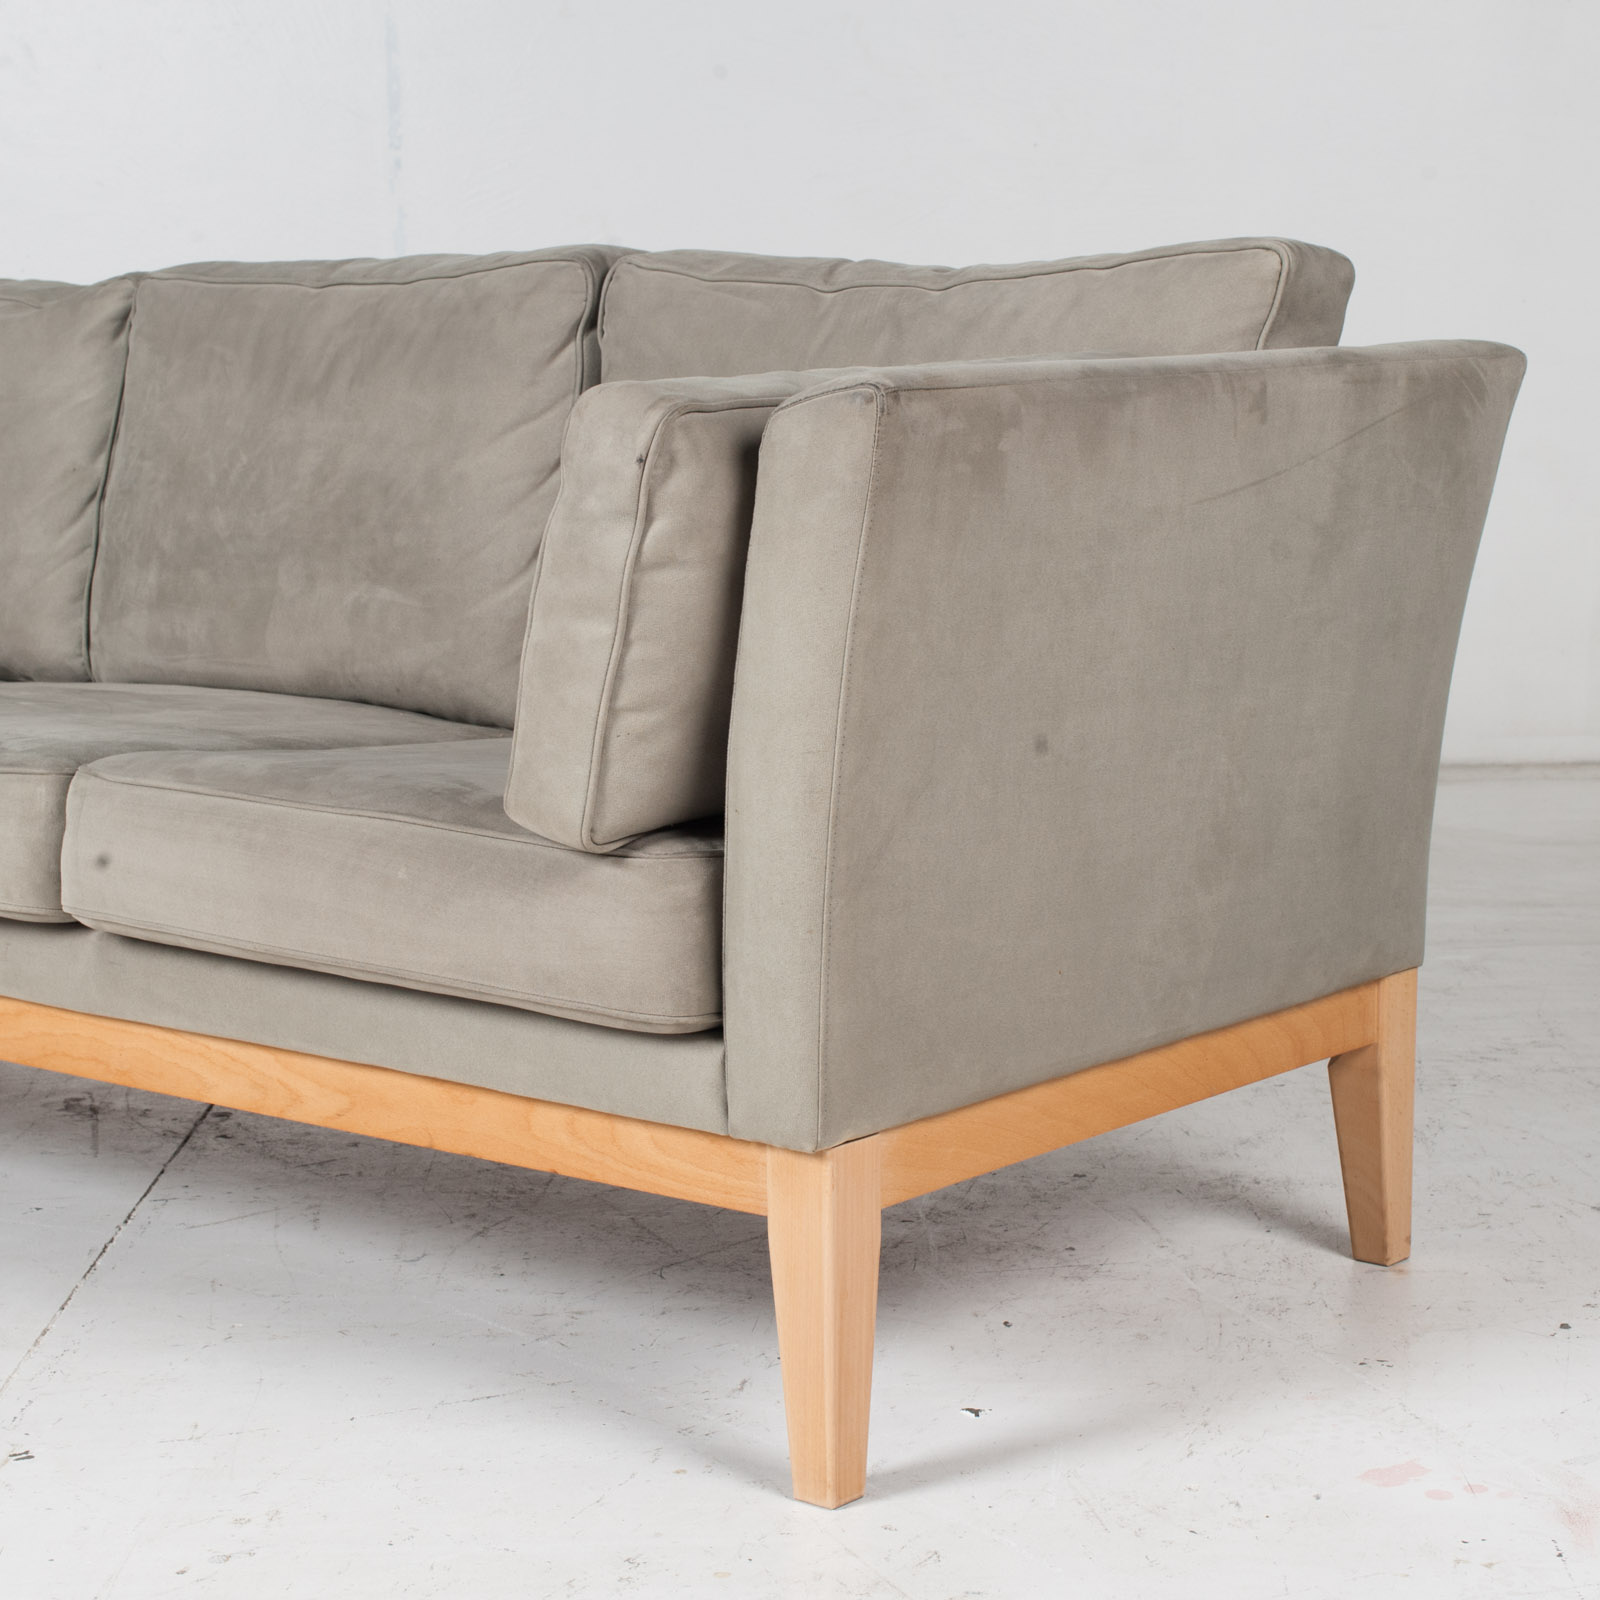 3 Seat Sofa By Stouby In Grey Macro Suede, 1960s, Denmark5